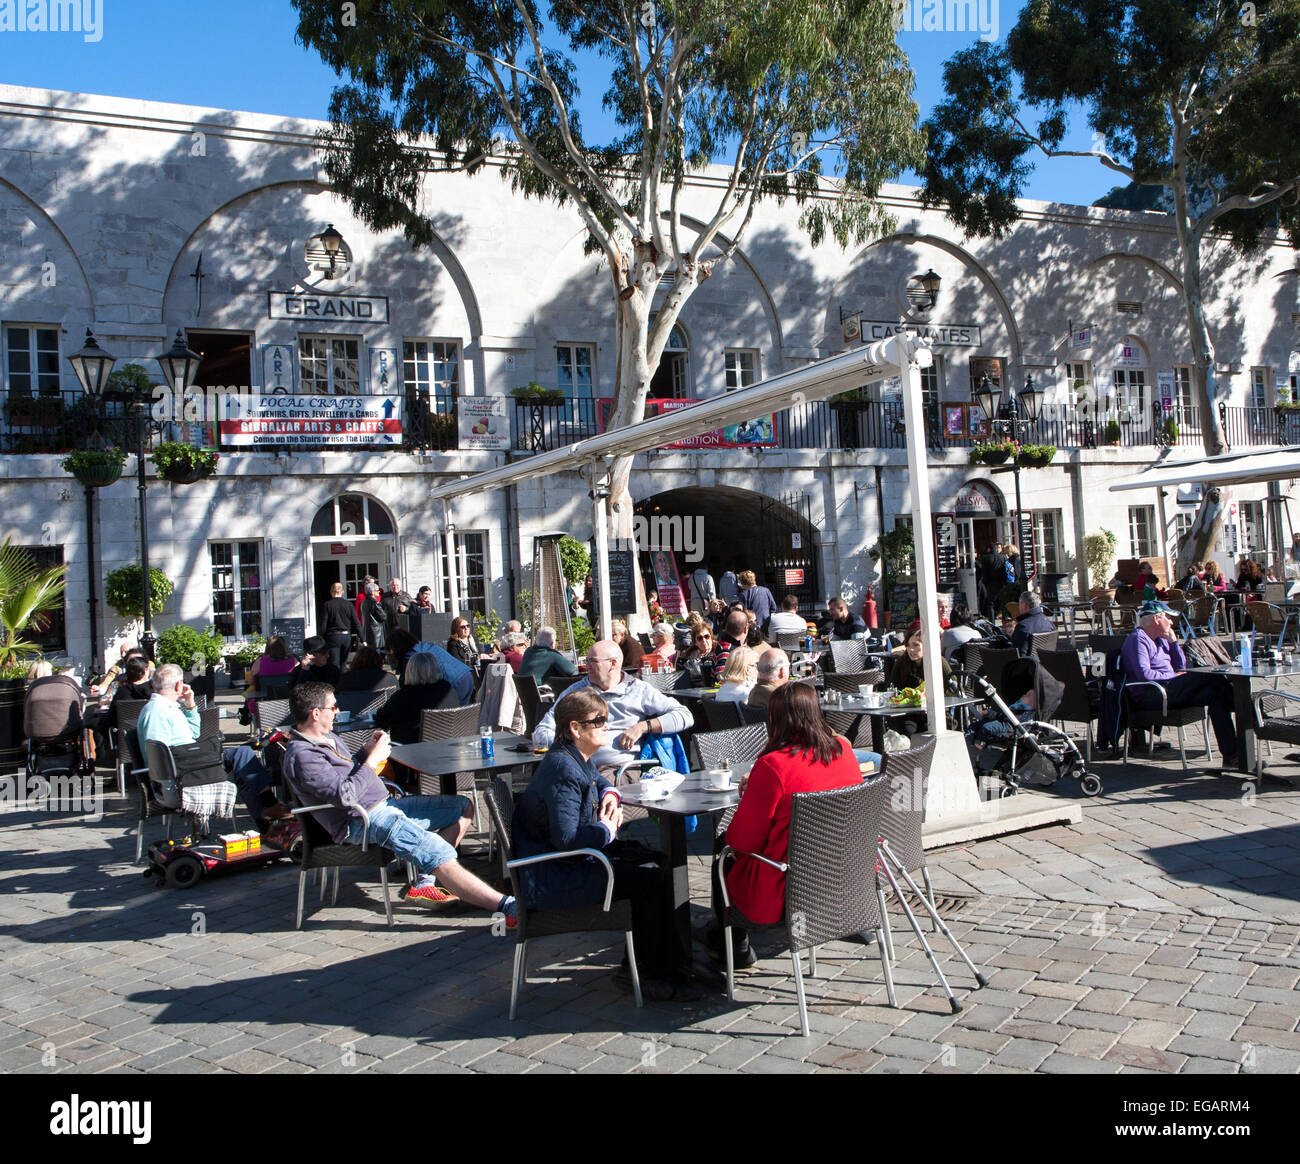 People and cafes in Grand Casemates Square, Gibraltar,  Gibraltar, British territory in southern Europe - Stock Image